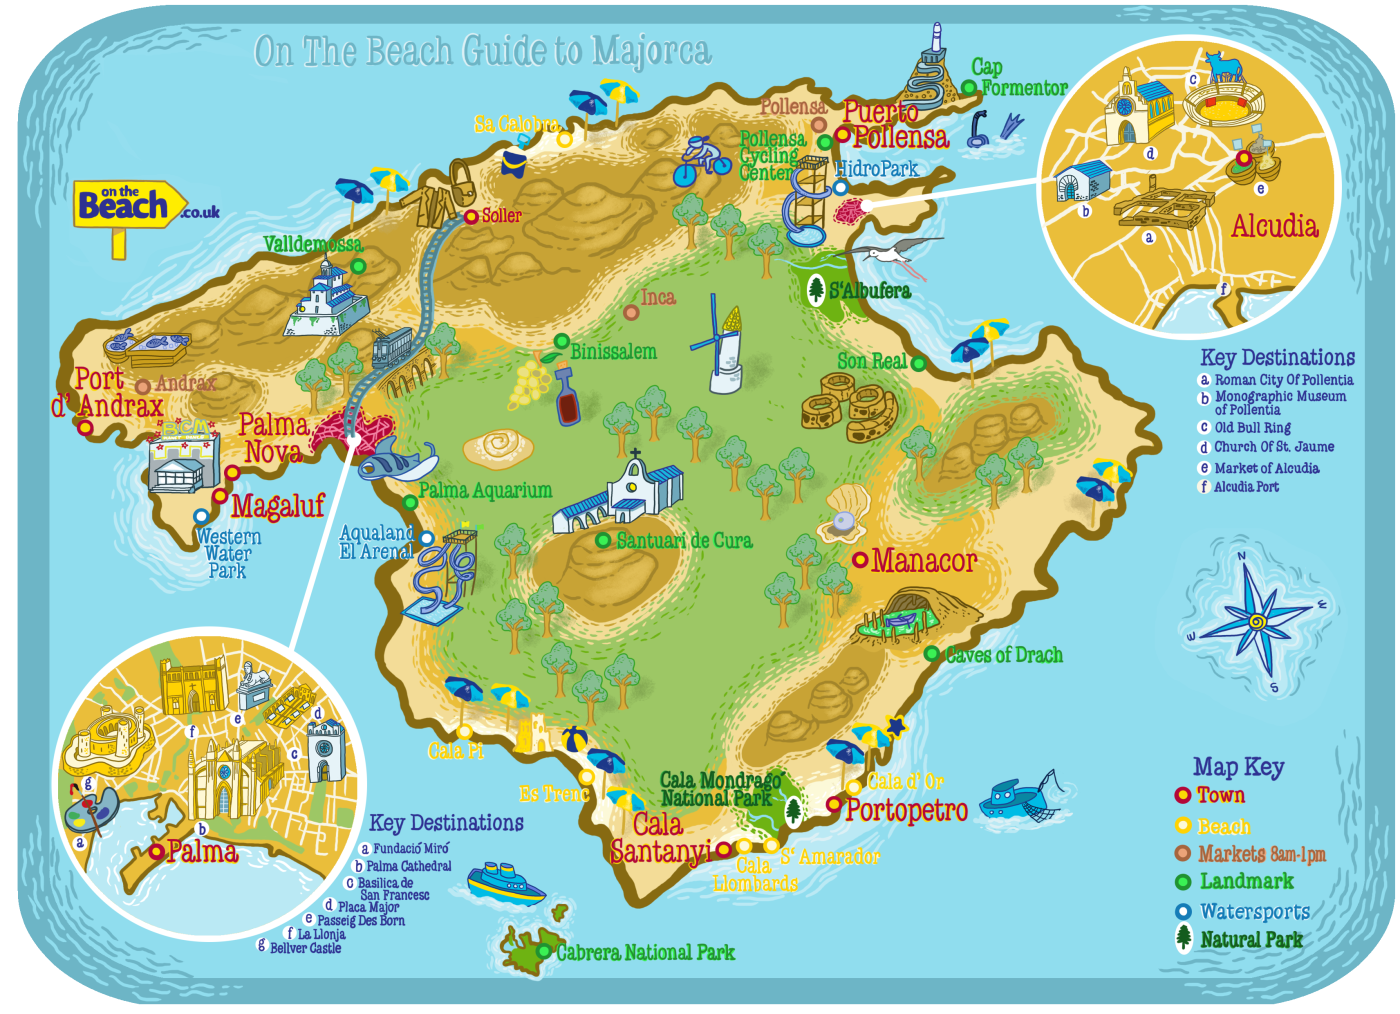 Use our family friendly guide and hand drawn map of the island to